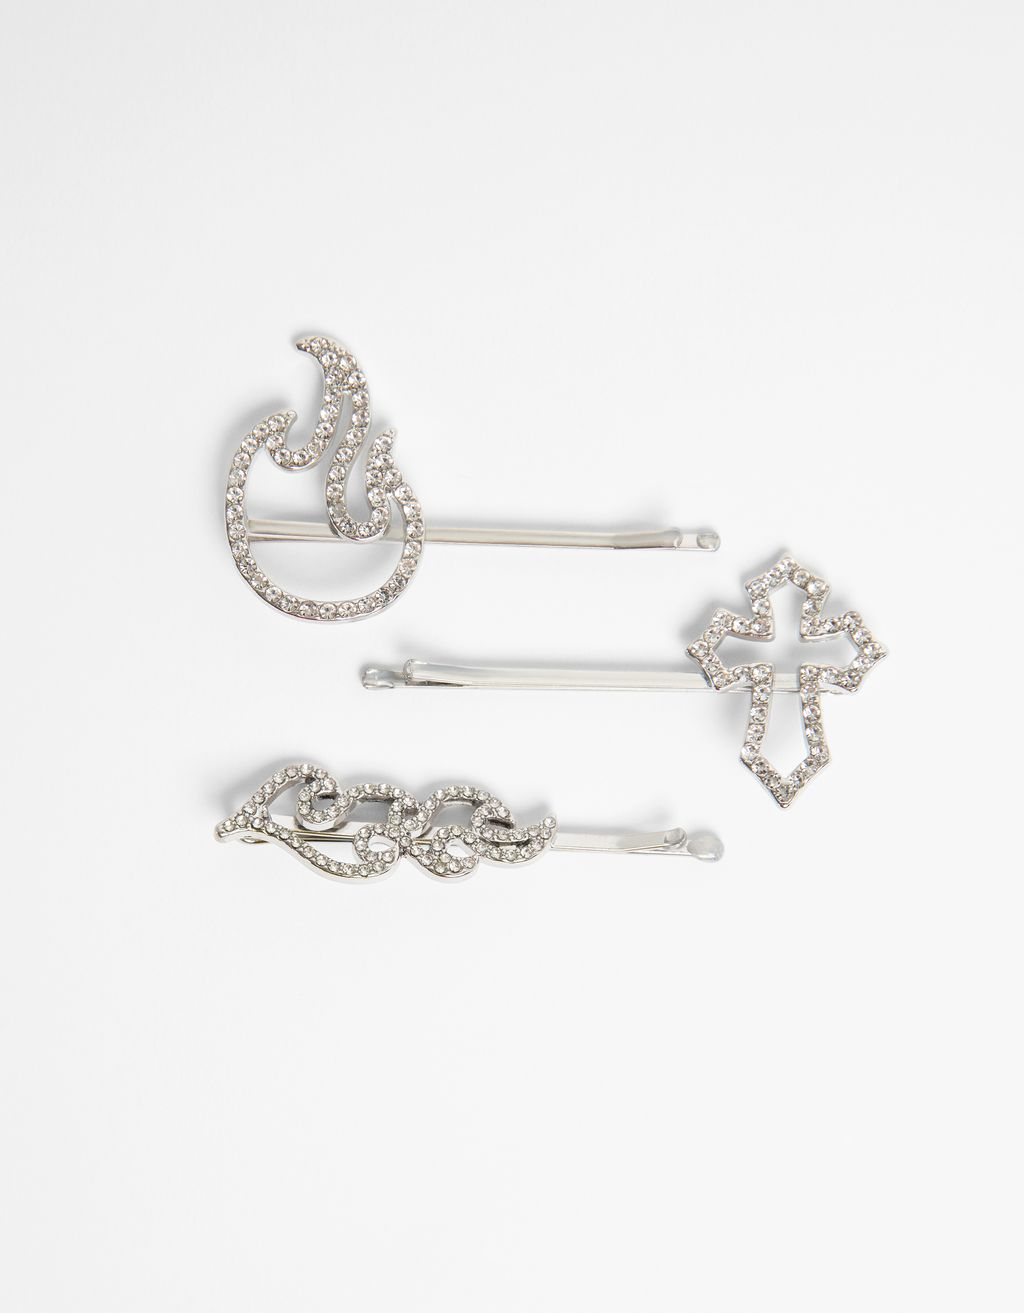 Pack of rhinestone hair clips